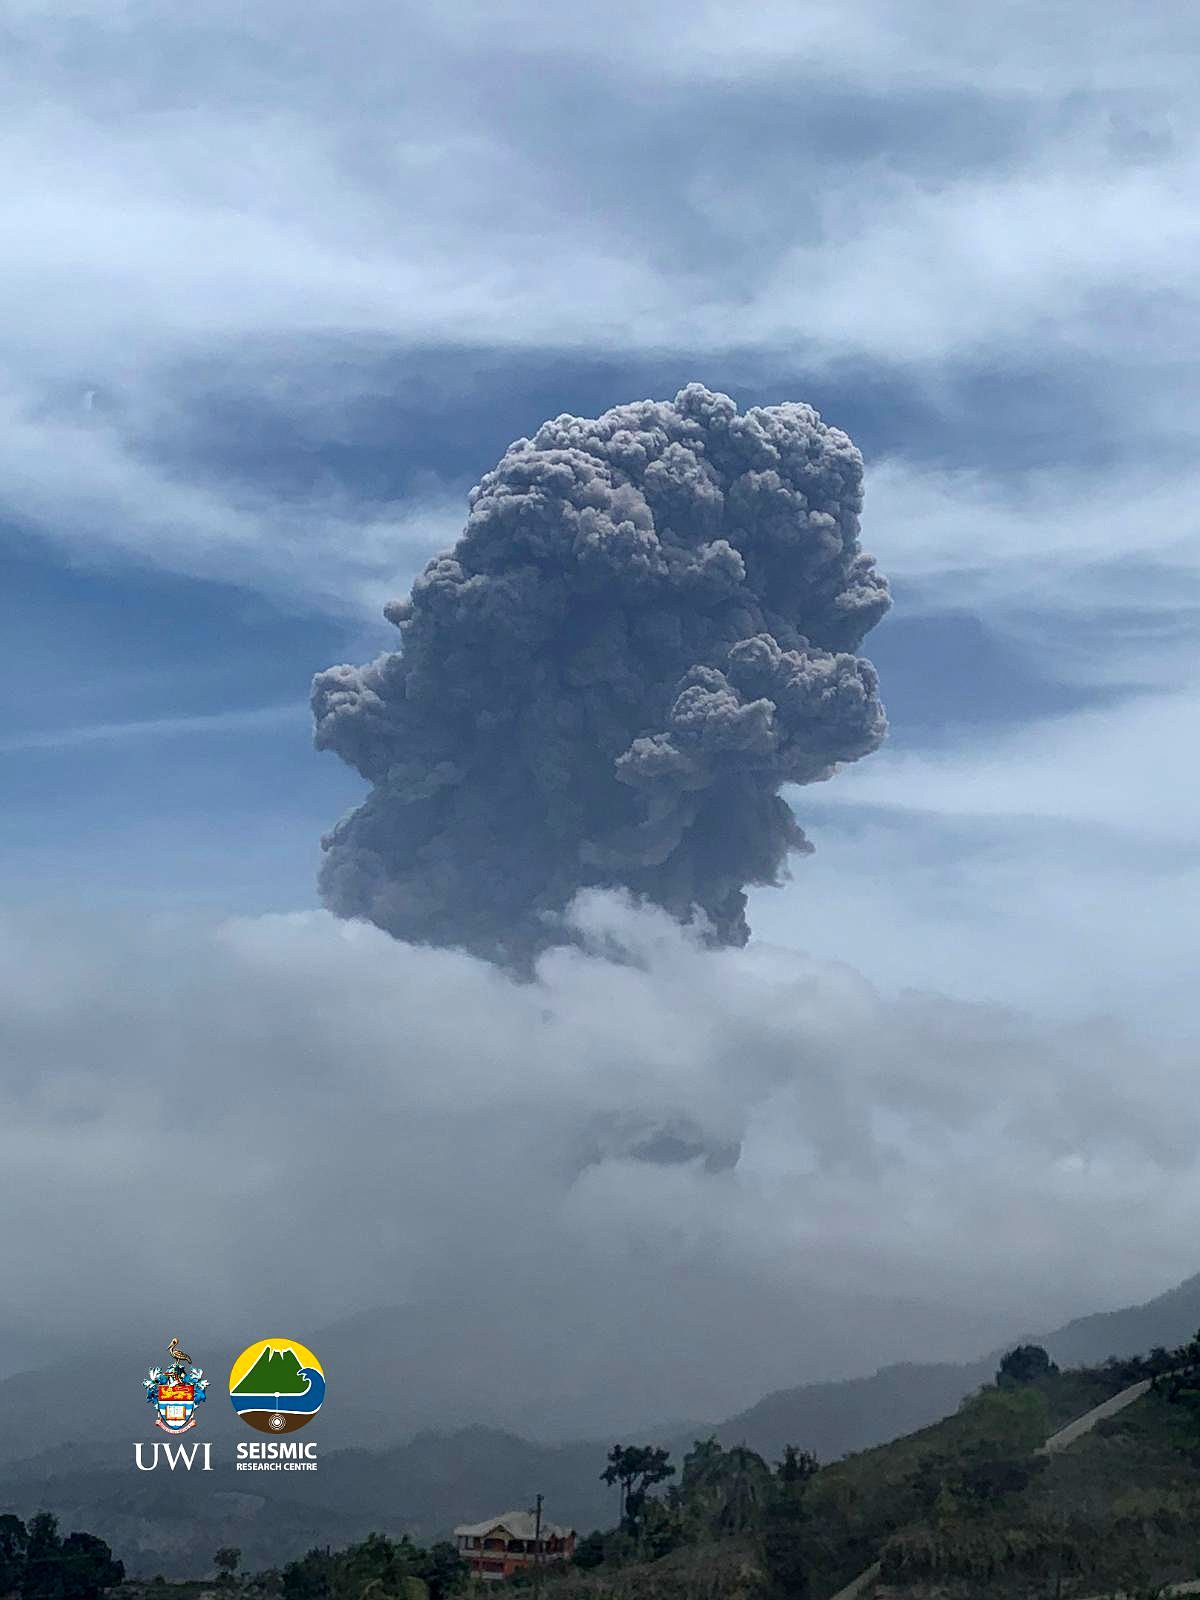 Soufriere - eruptive plume of 04/14/2021 / 11:32 a.m. - UWI photo